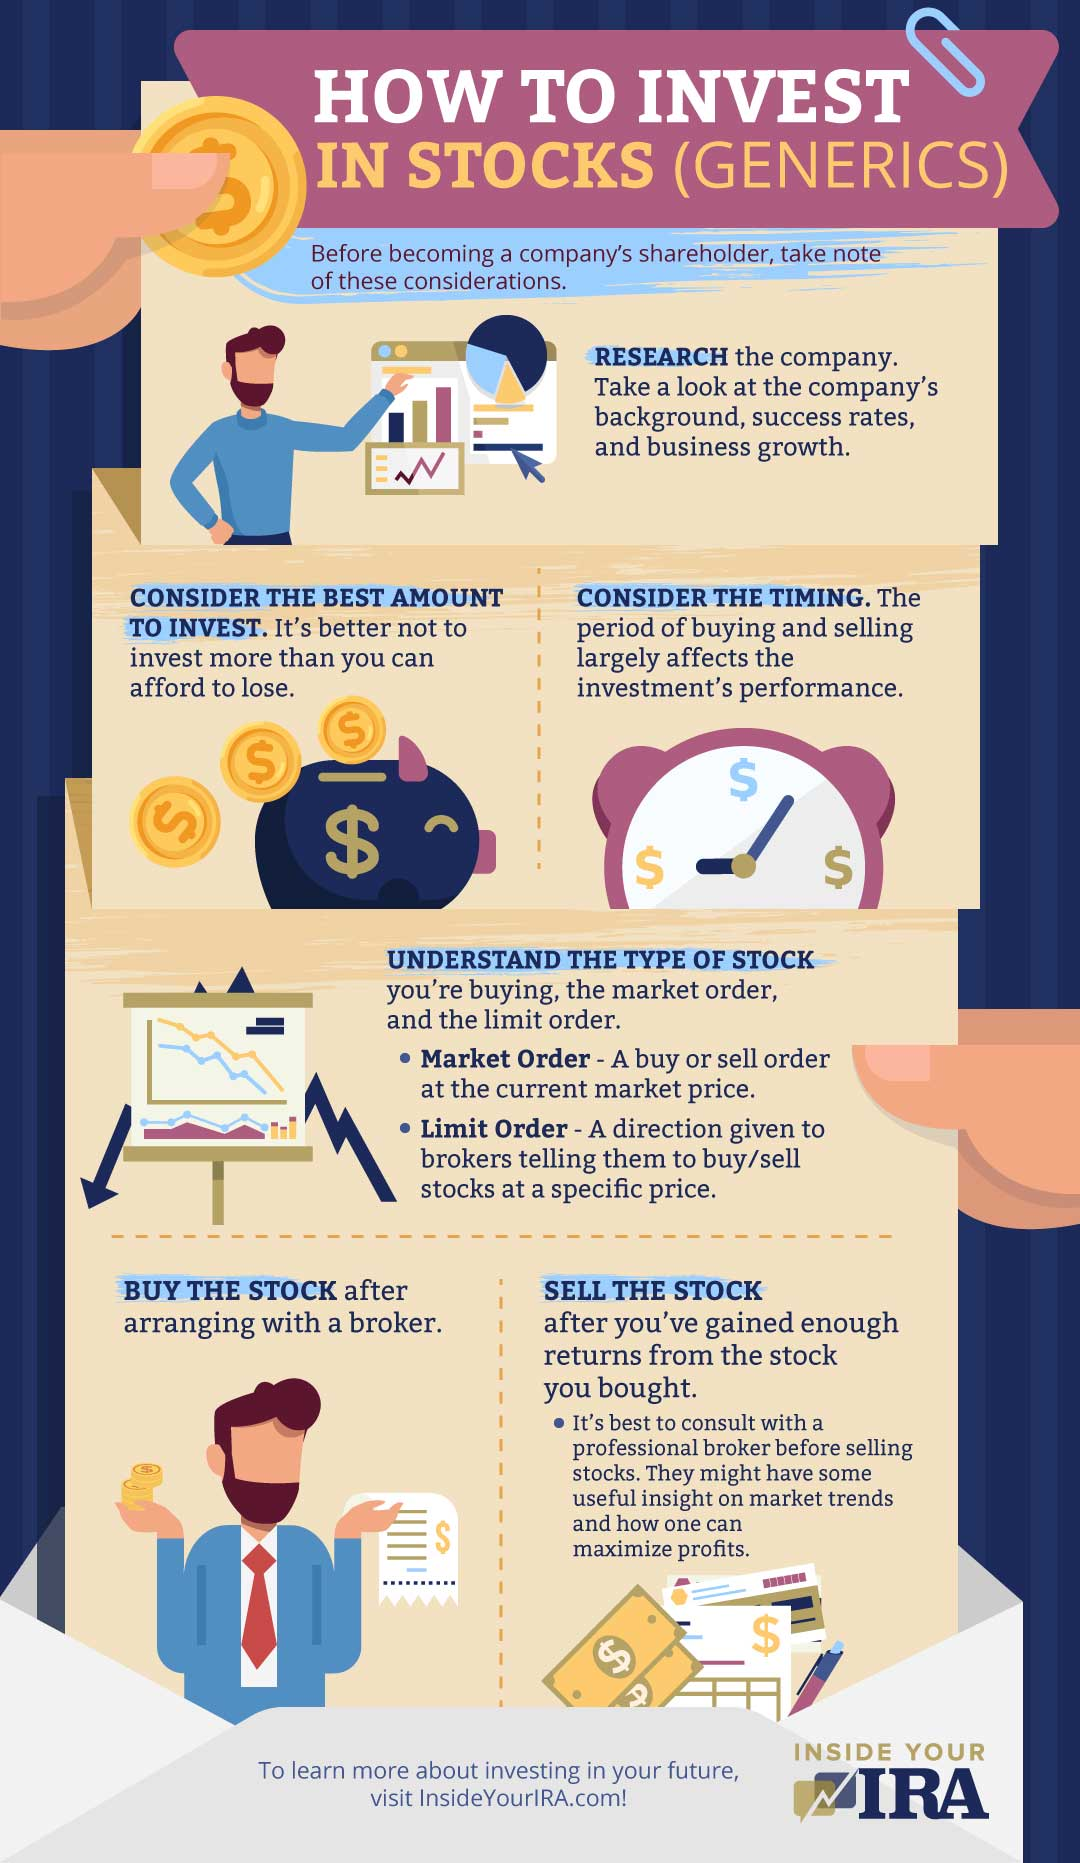 How To Invest In Stocks | Step-By-Step Guide [INFOGRAPHIC] | Inside Your IRA